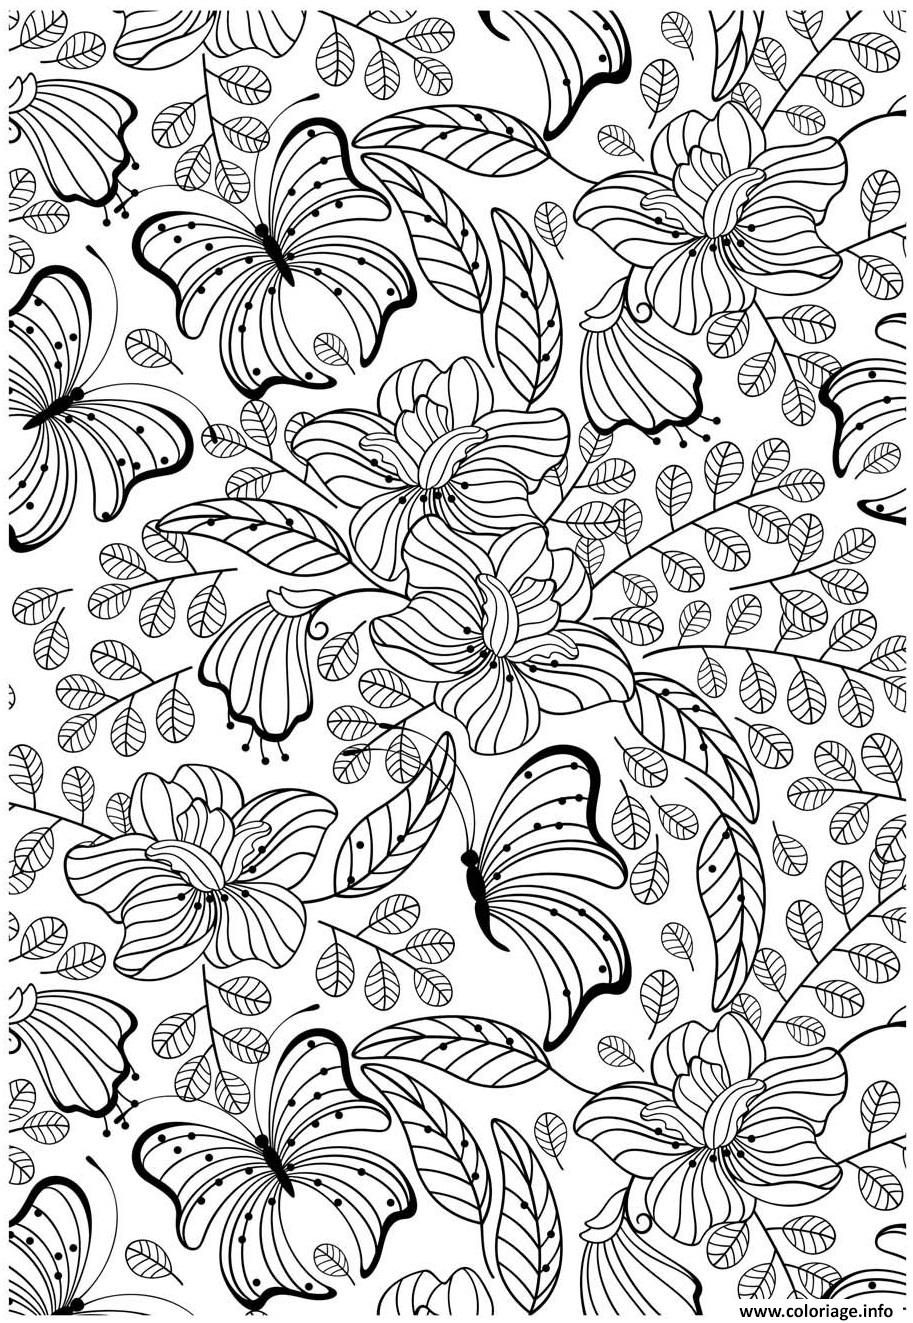 Mignonne Coloriage Adultes Anti Stress 20 sur Coloriage Inspiration for Coloriage Adultes Anti Stress